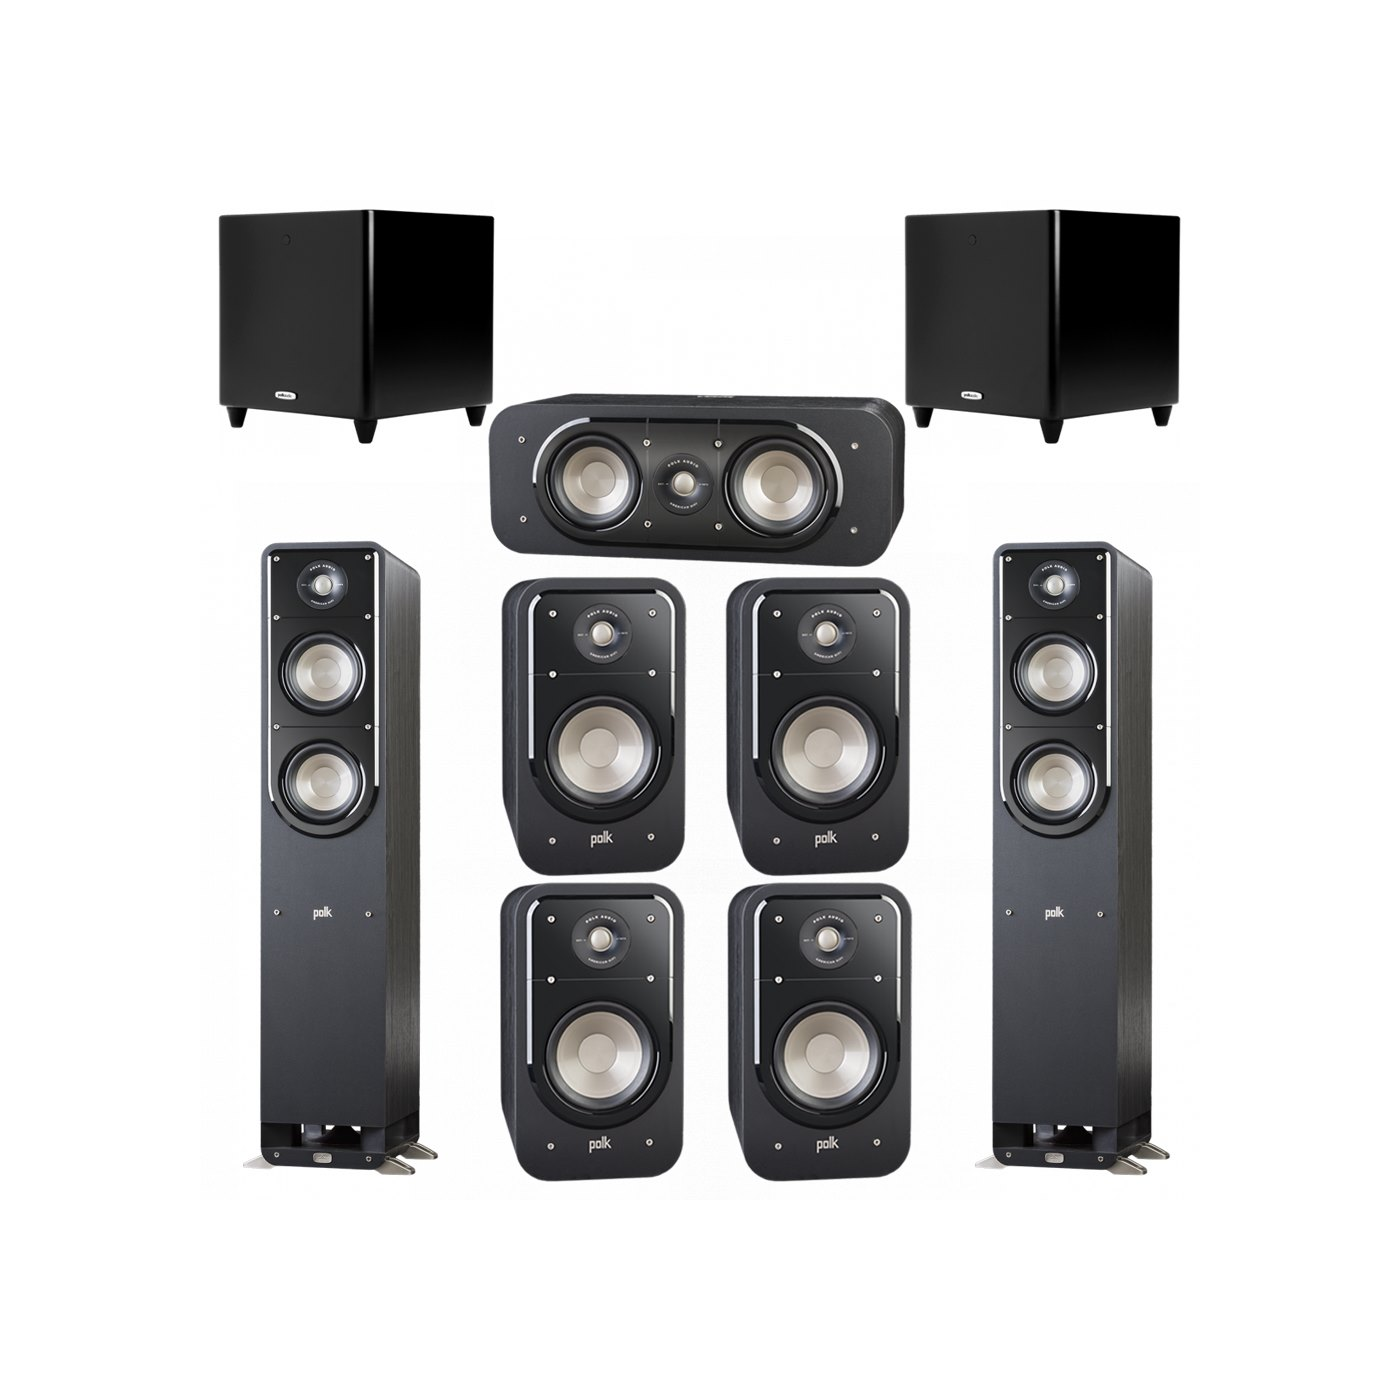 Polk Audio Signature 7.2 System with 2 S50 Tower Speaker, 1 Polk S30 Center Speaker, 4 Polk S20 Bookshelf Speaker, 2 Polk DSW PRO 550 wi Subwoofer